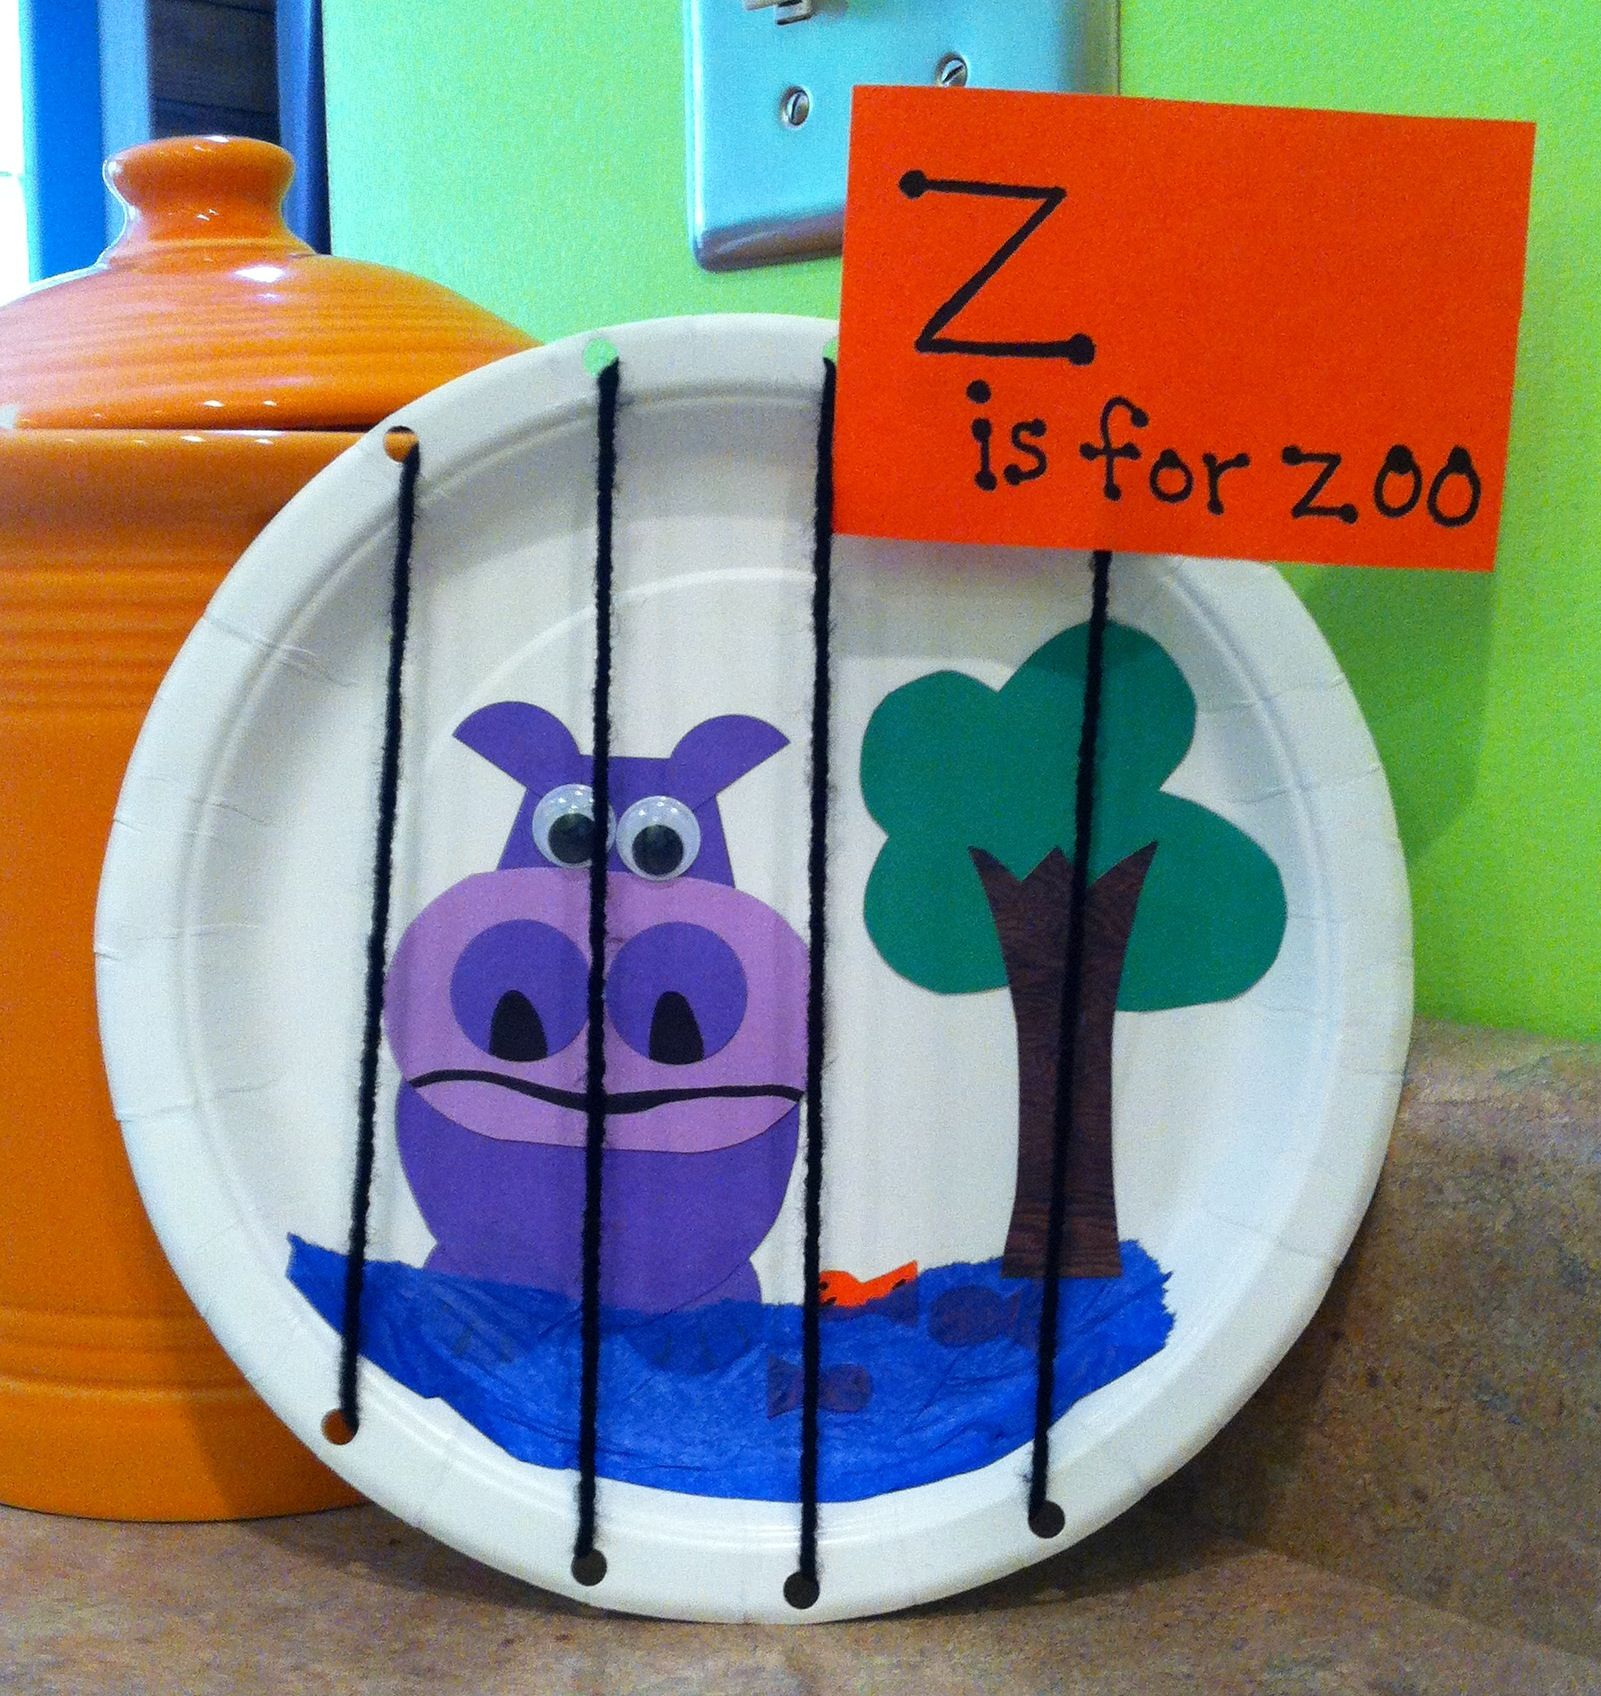 Letter Z Craft. Use A Small Box Instead.